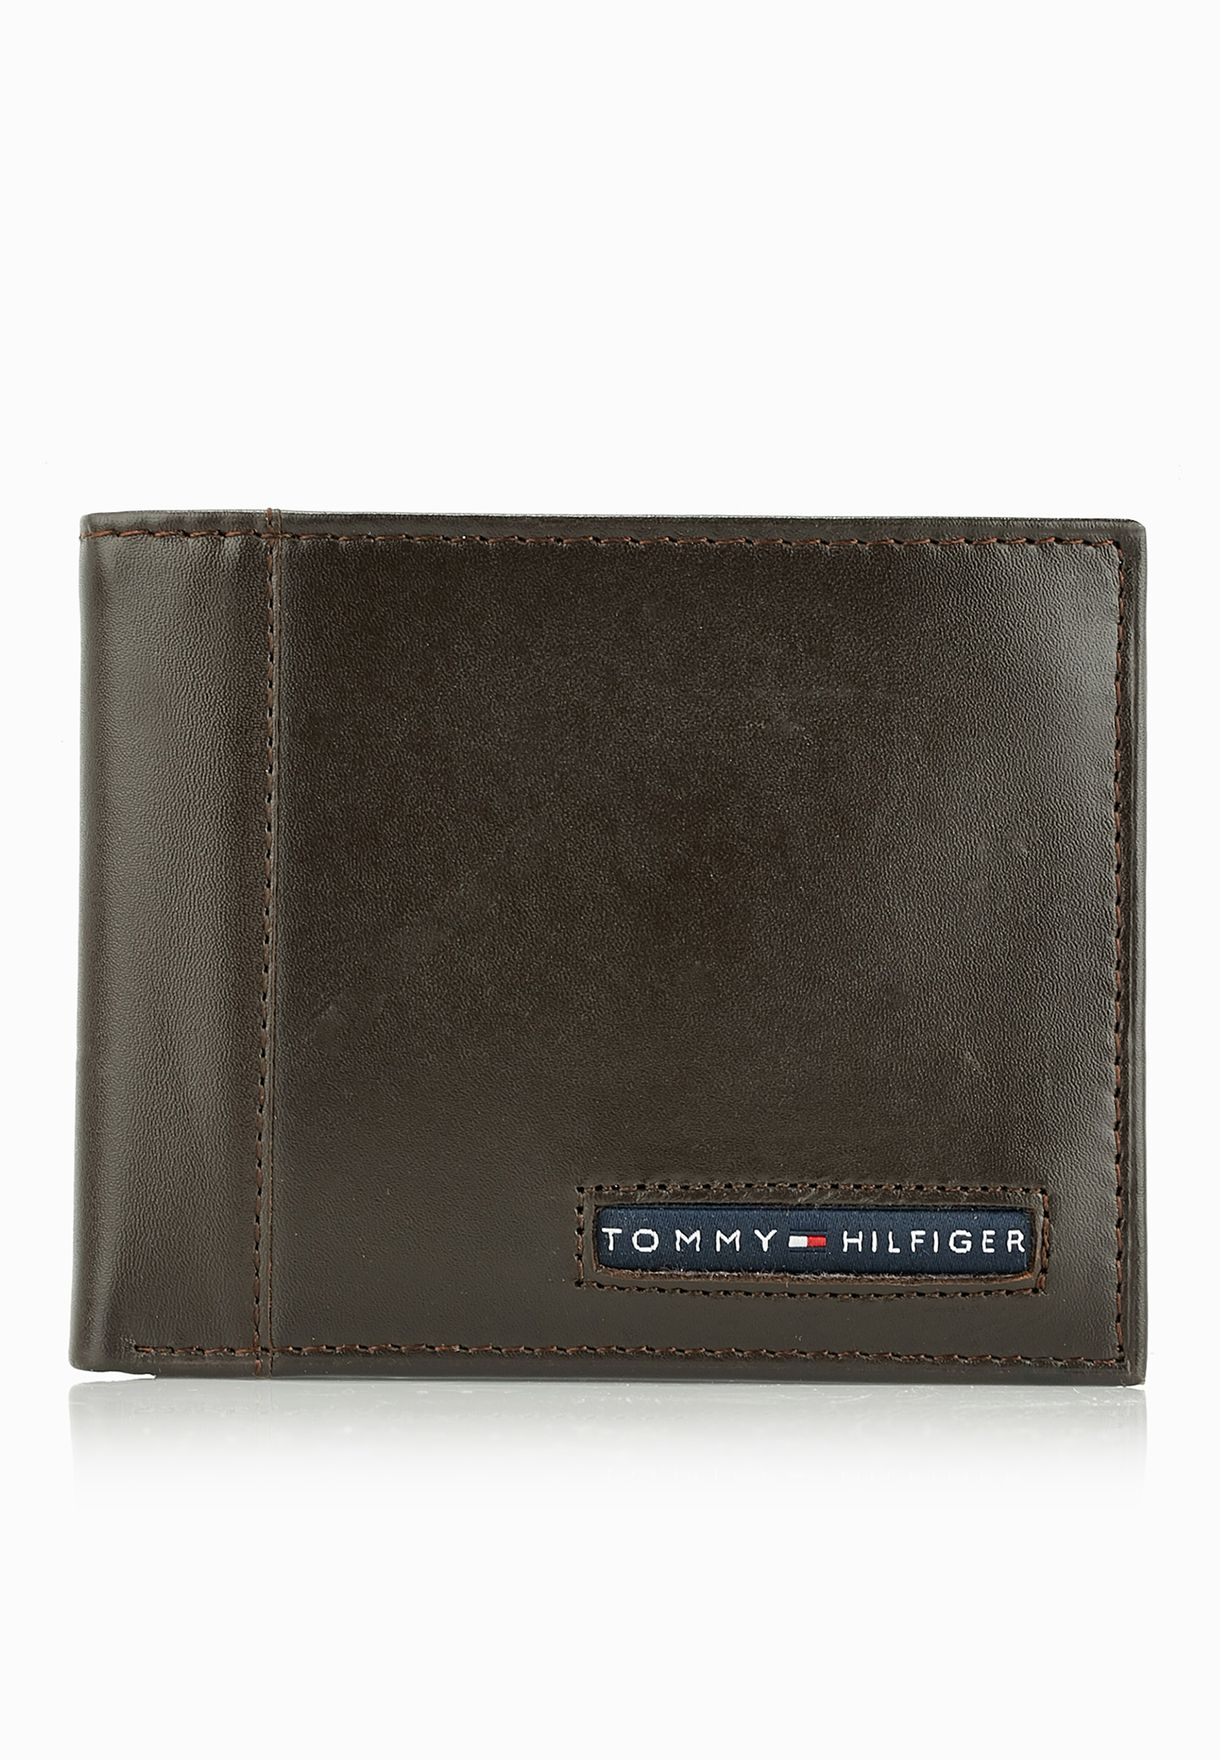 d1426a77adddb9 Shop Tommy Hilfiger browns Cambridge Passcase Wallet 31TL22X063 for ...